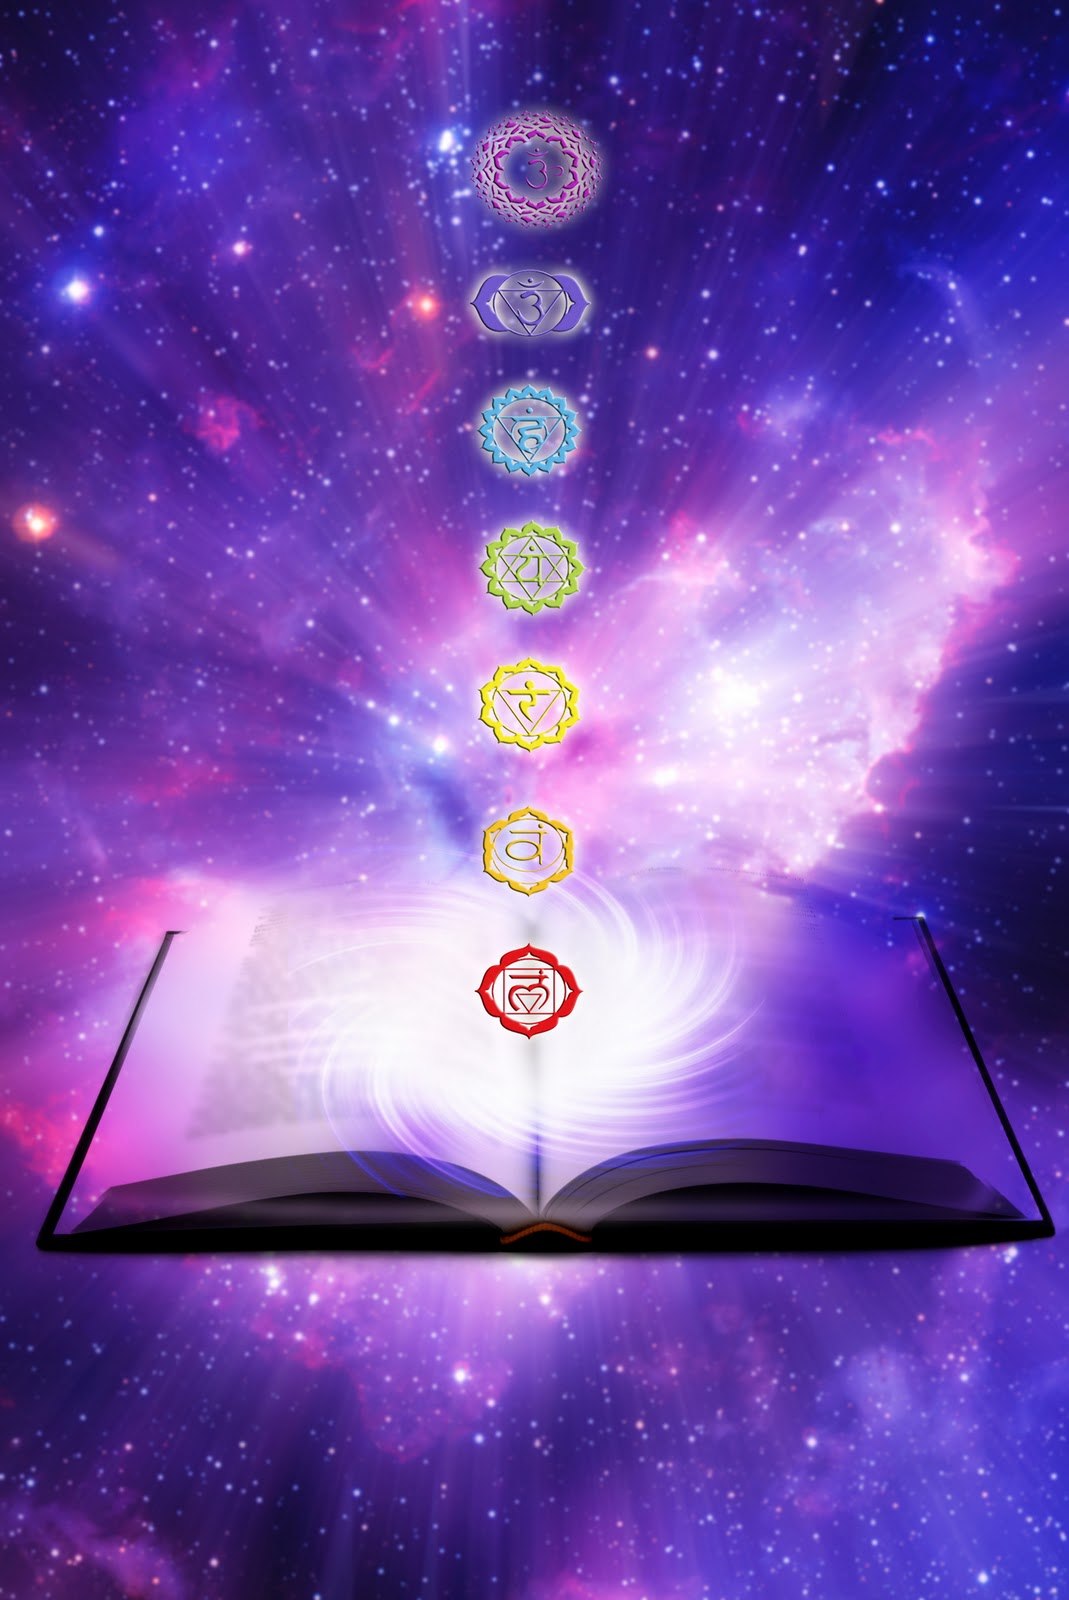 Past Life And Karmic Tarot By Edain Mccoy: Empowering Psychic Readings By OMoROSE: Past Life Readings